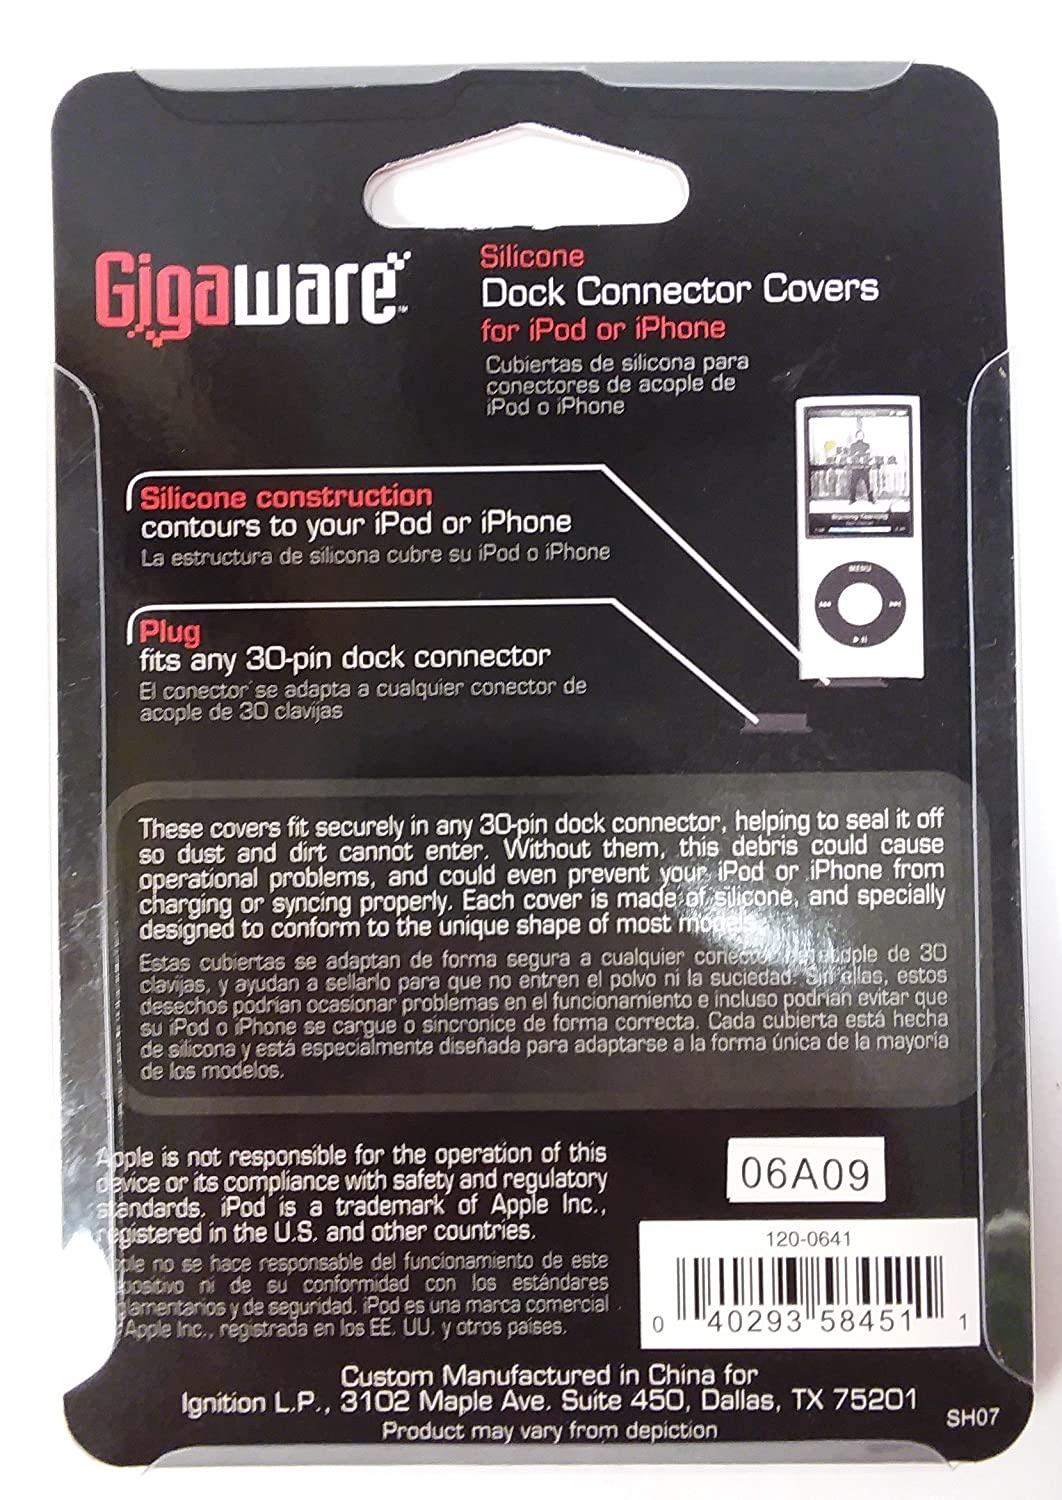 Amazon.com: Gigaware Silicone Dock Connector Covers For Ipod Or Iphone: MP3 Players & Accessories